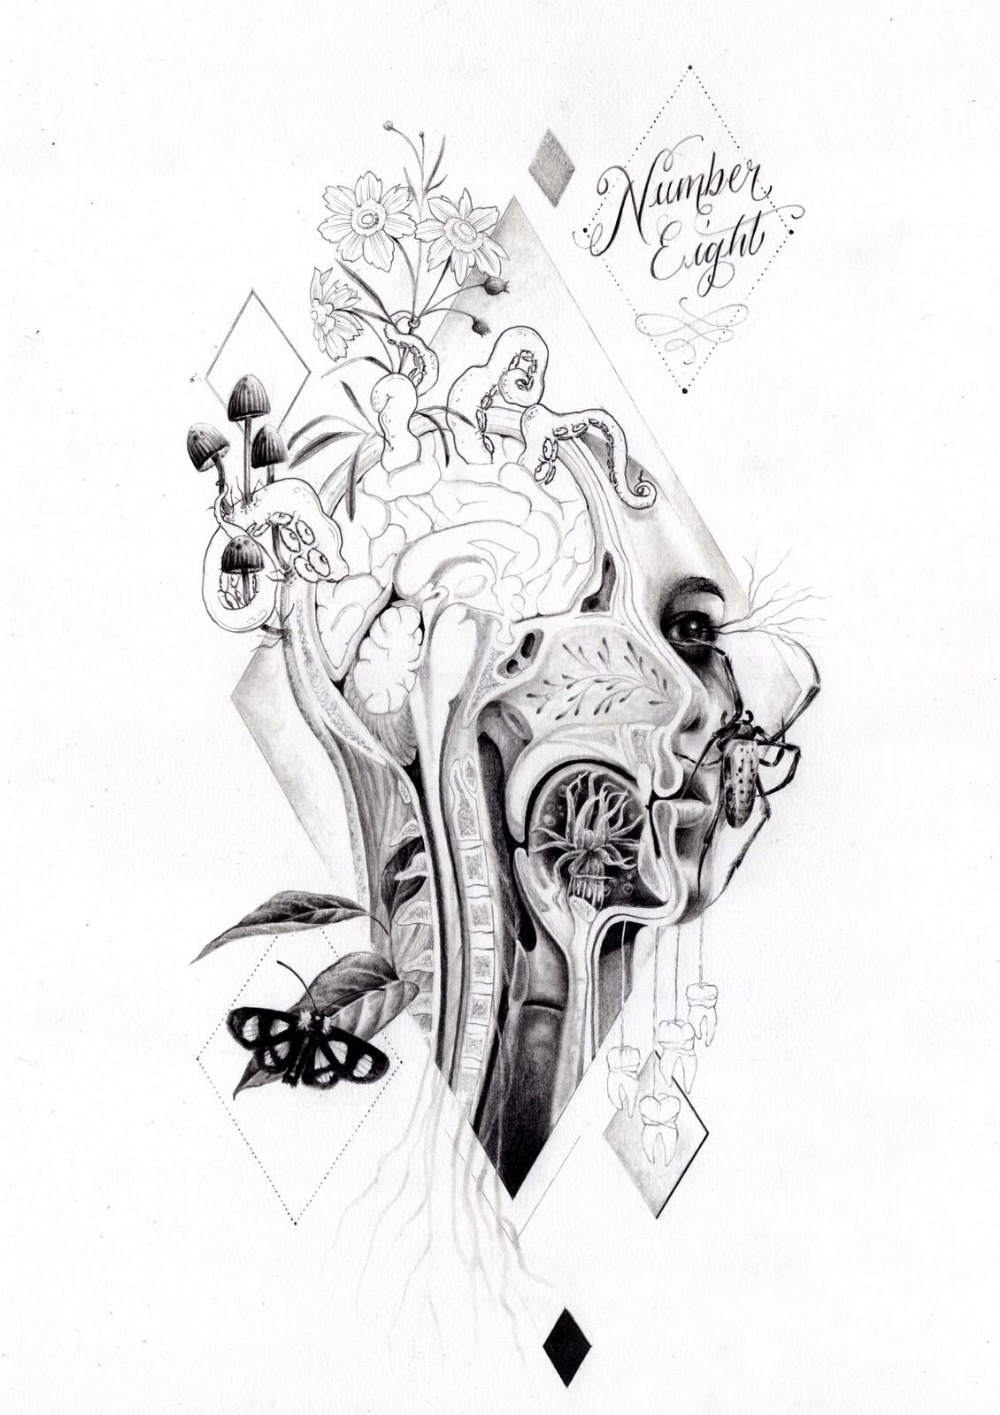 Remy Nurse (British). '8 of Diamonds', pencil and ink. Remy Nurse is a tattoo artist living and